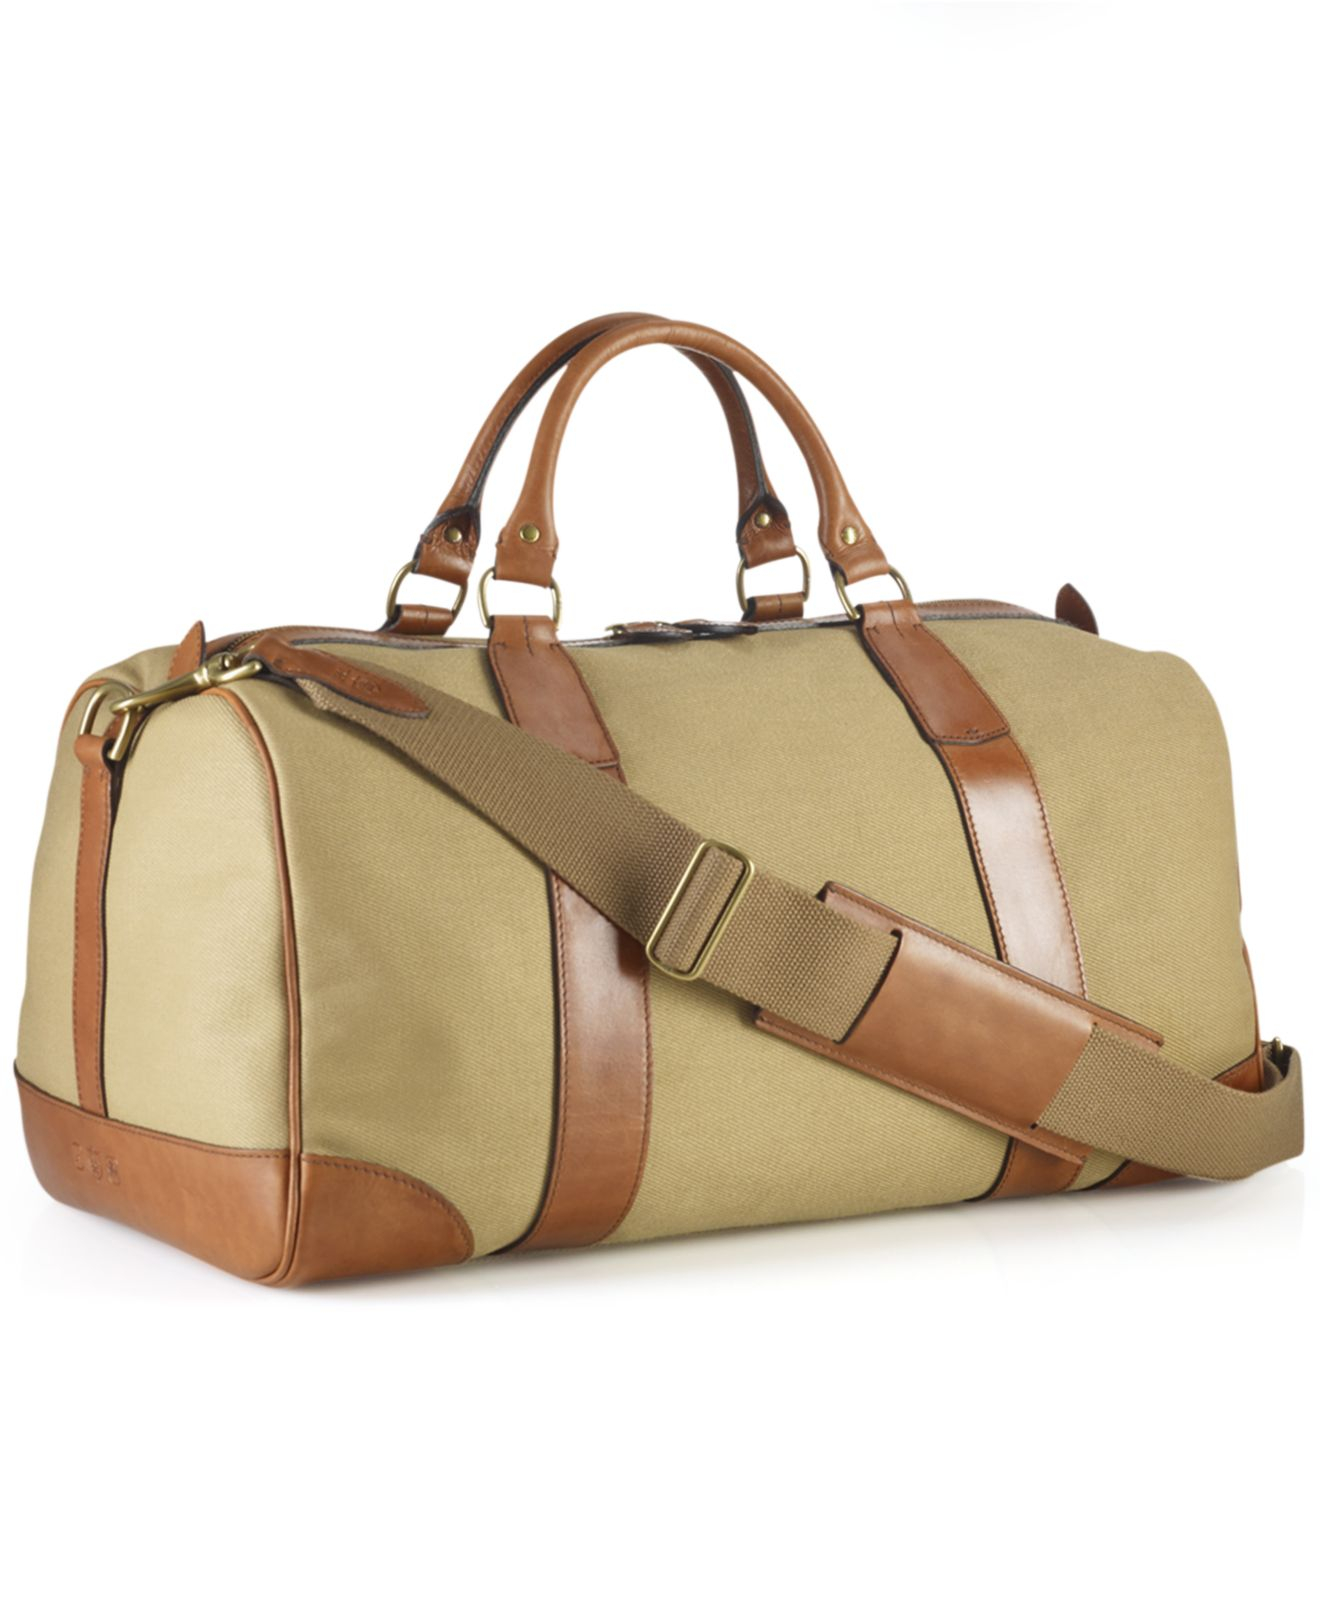 09b0fe351f36 ... low price lyst polo ralph lauren core canvas gym bag in natural for men  8adfb 52188 ...